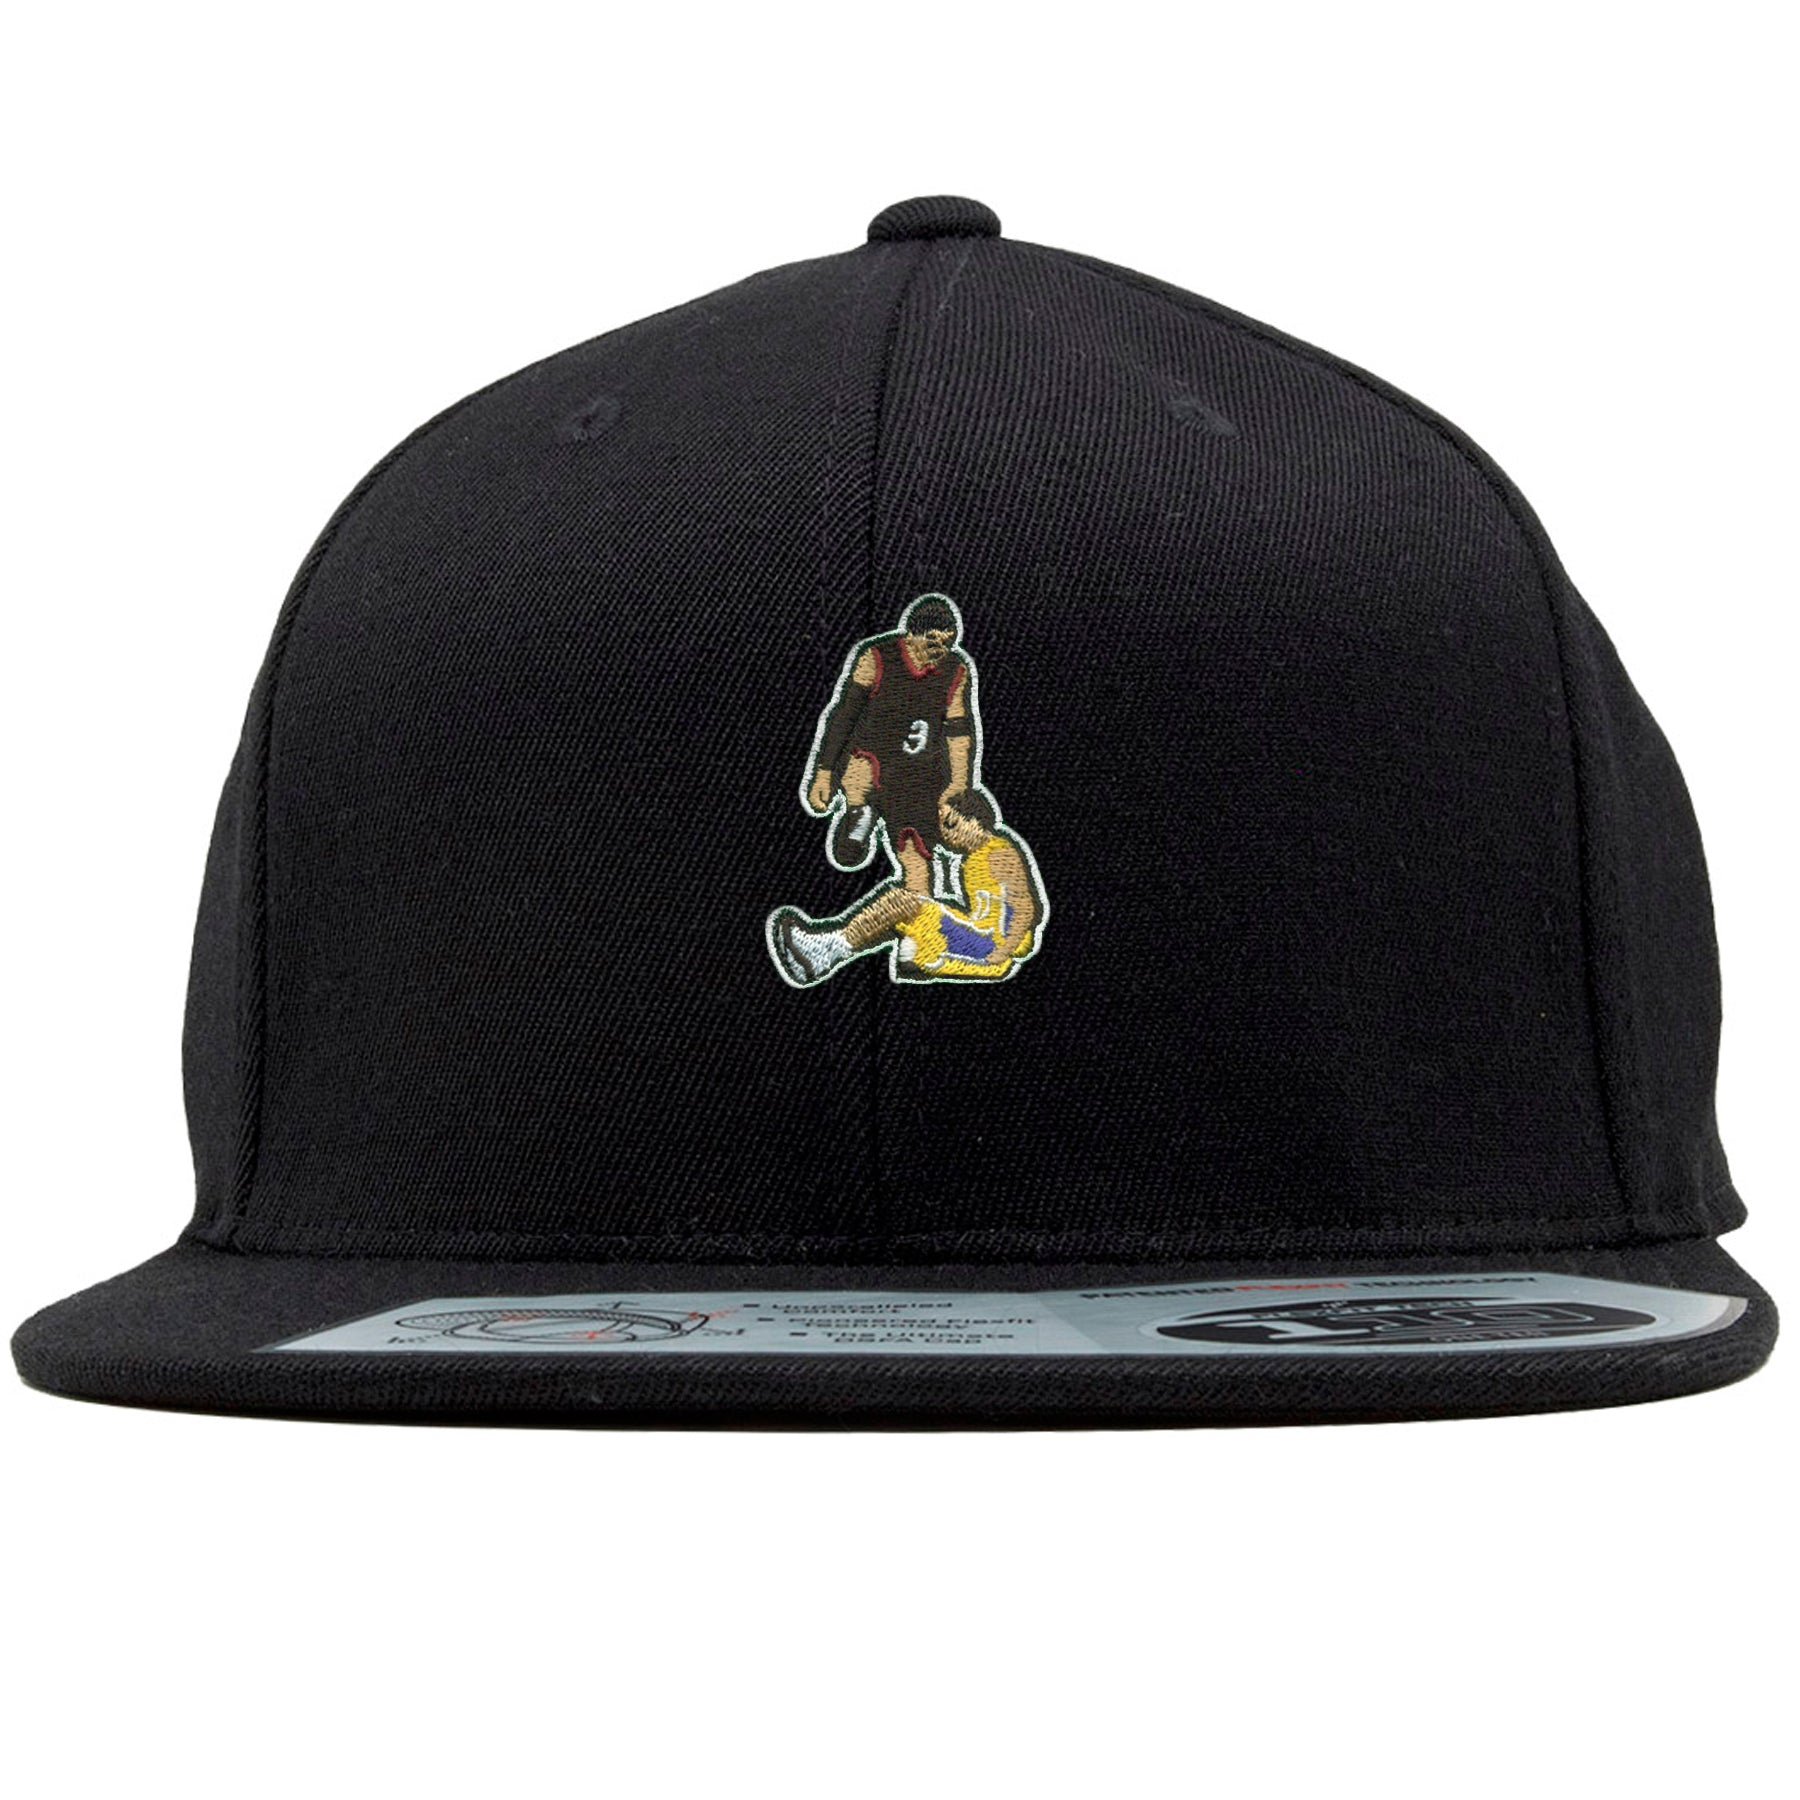 9ef8d29c366db on the front of the black allen iverson step over snapback hat there is an  image